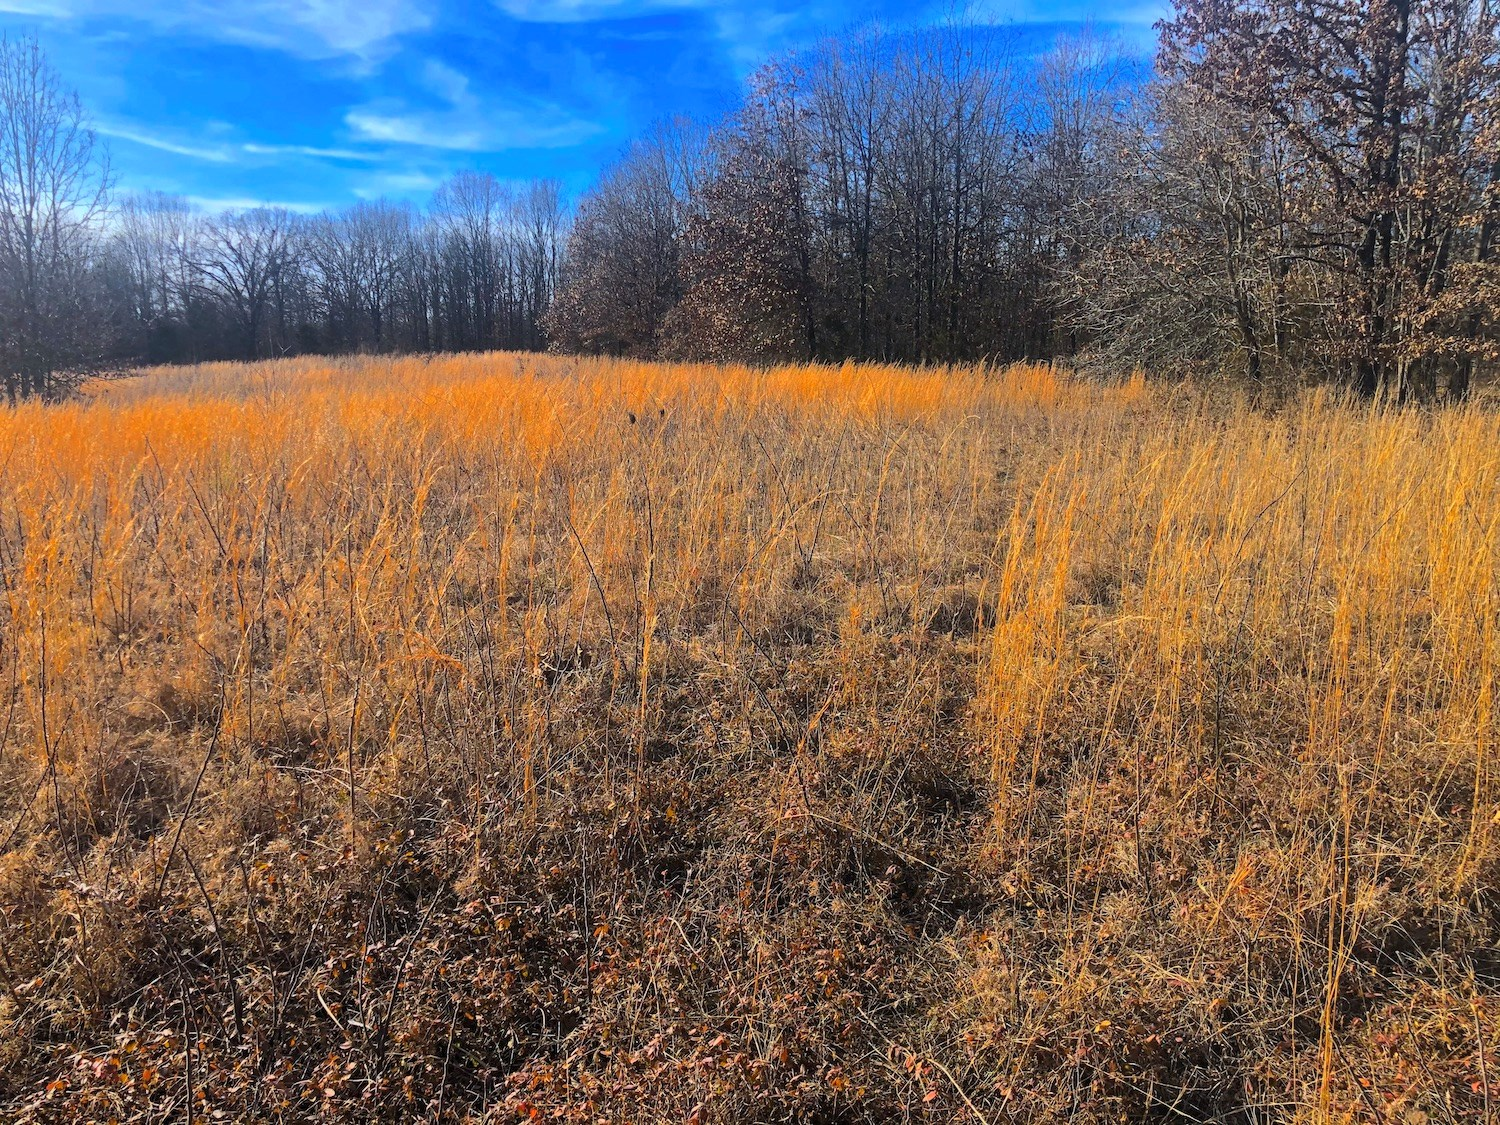 Vacant Land For Sale in the Ozarks